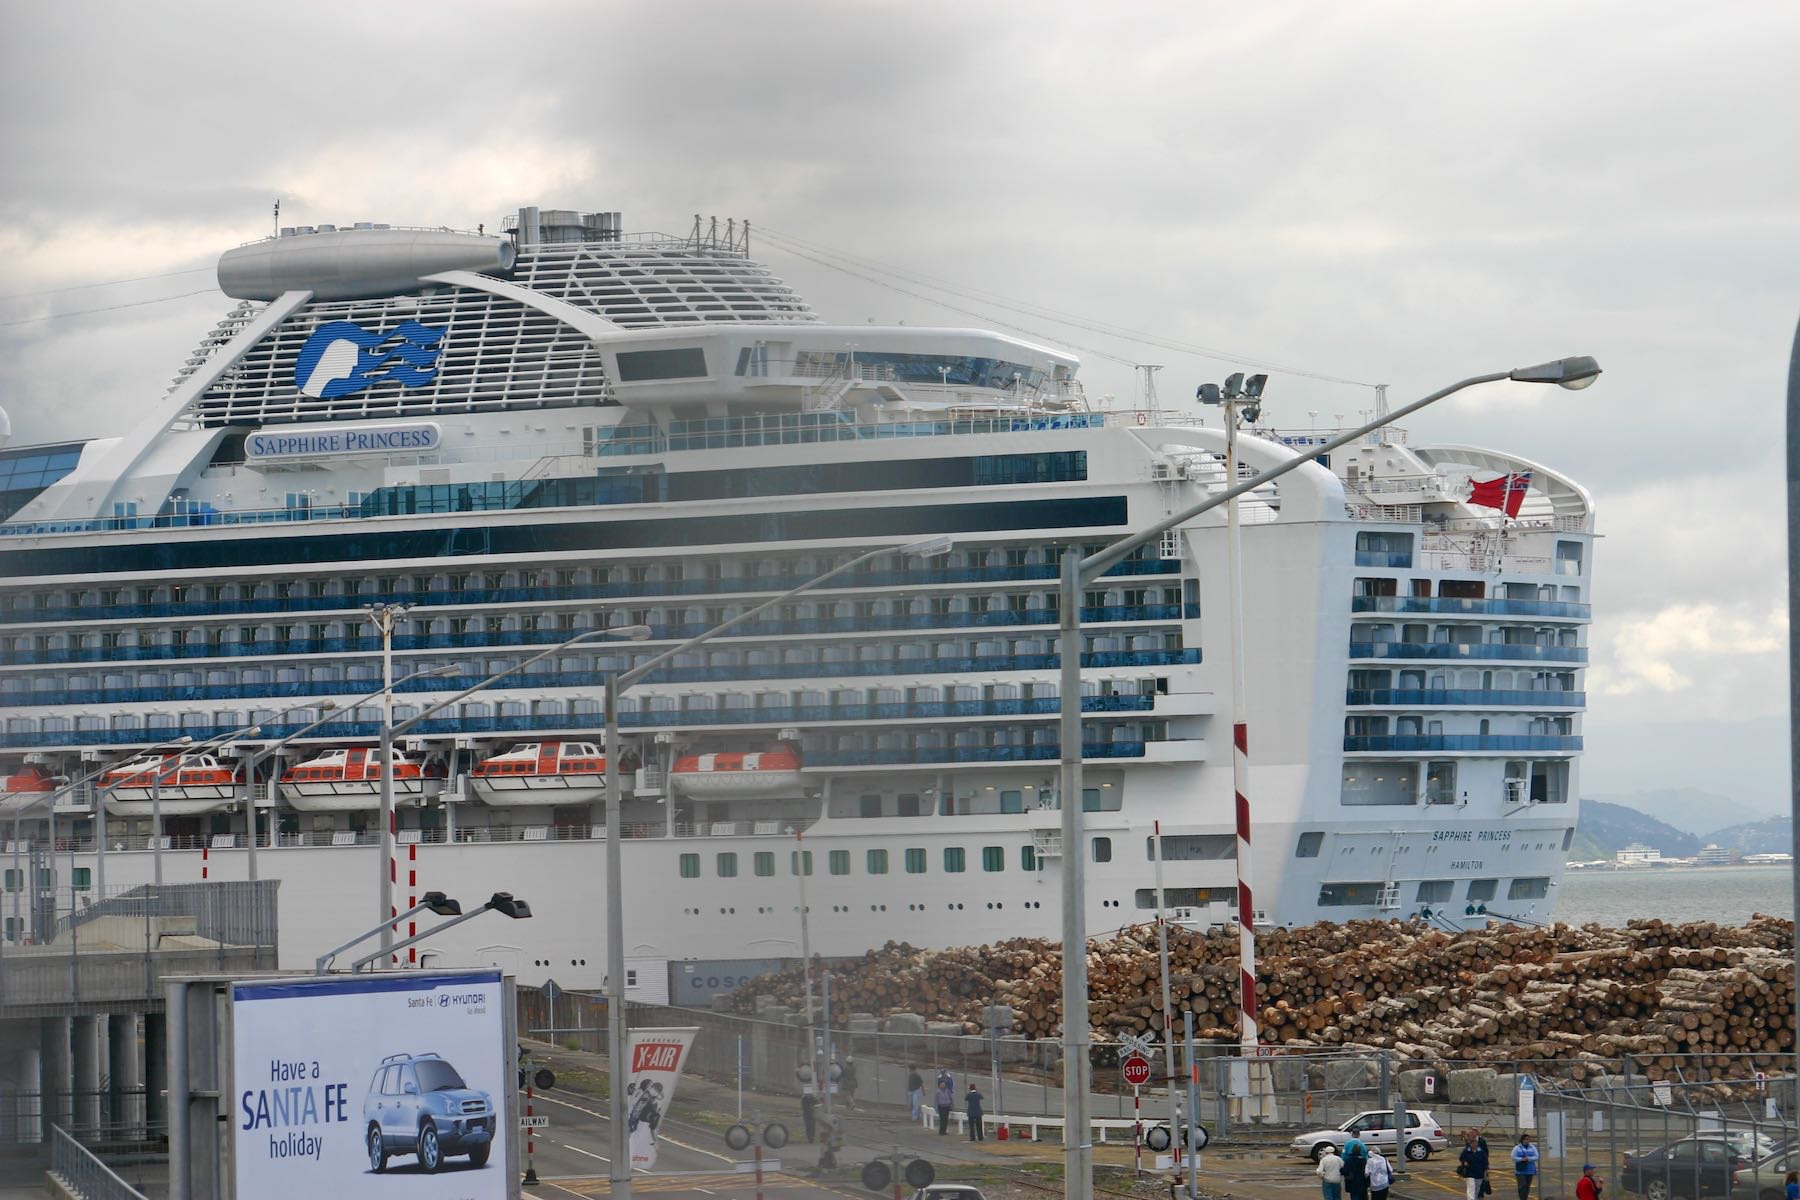 Sapphire Princess cruise ship with grids of cabin windows, next to a grid of logs waiting for export.